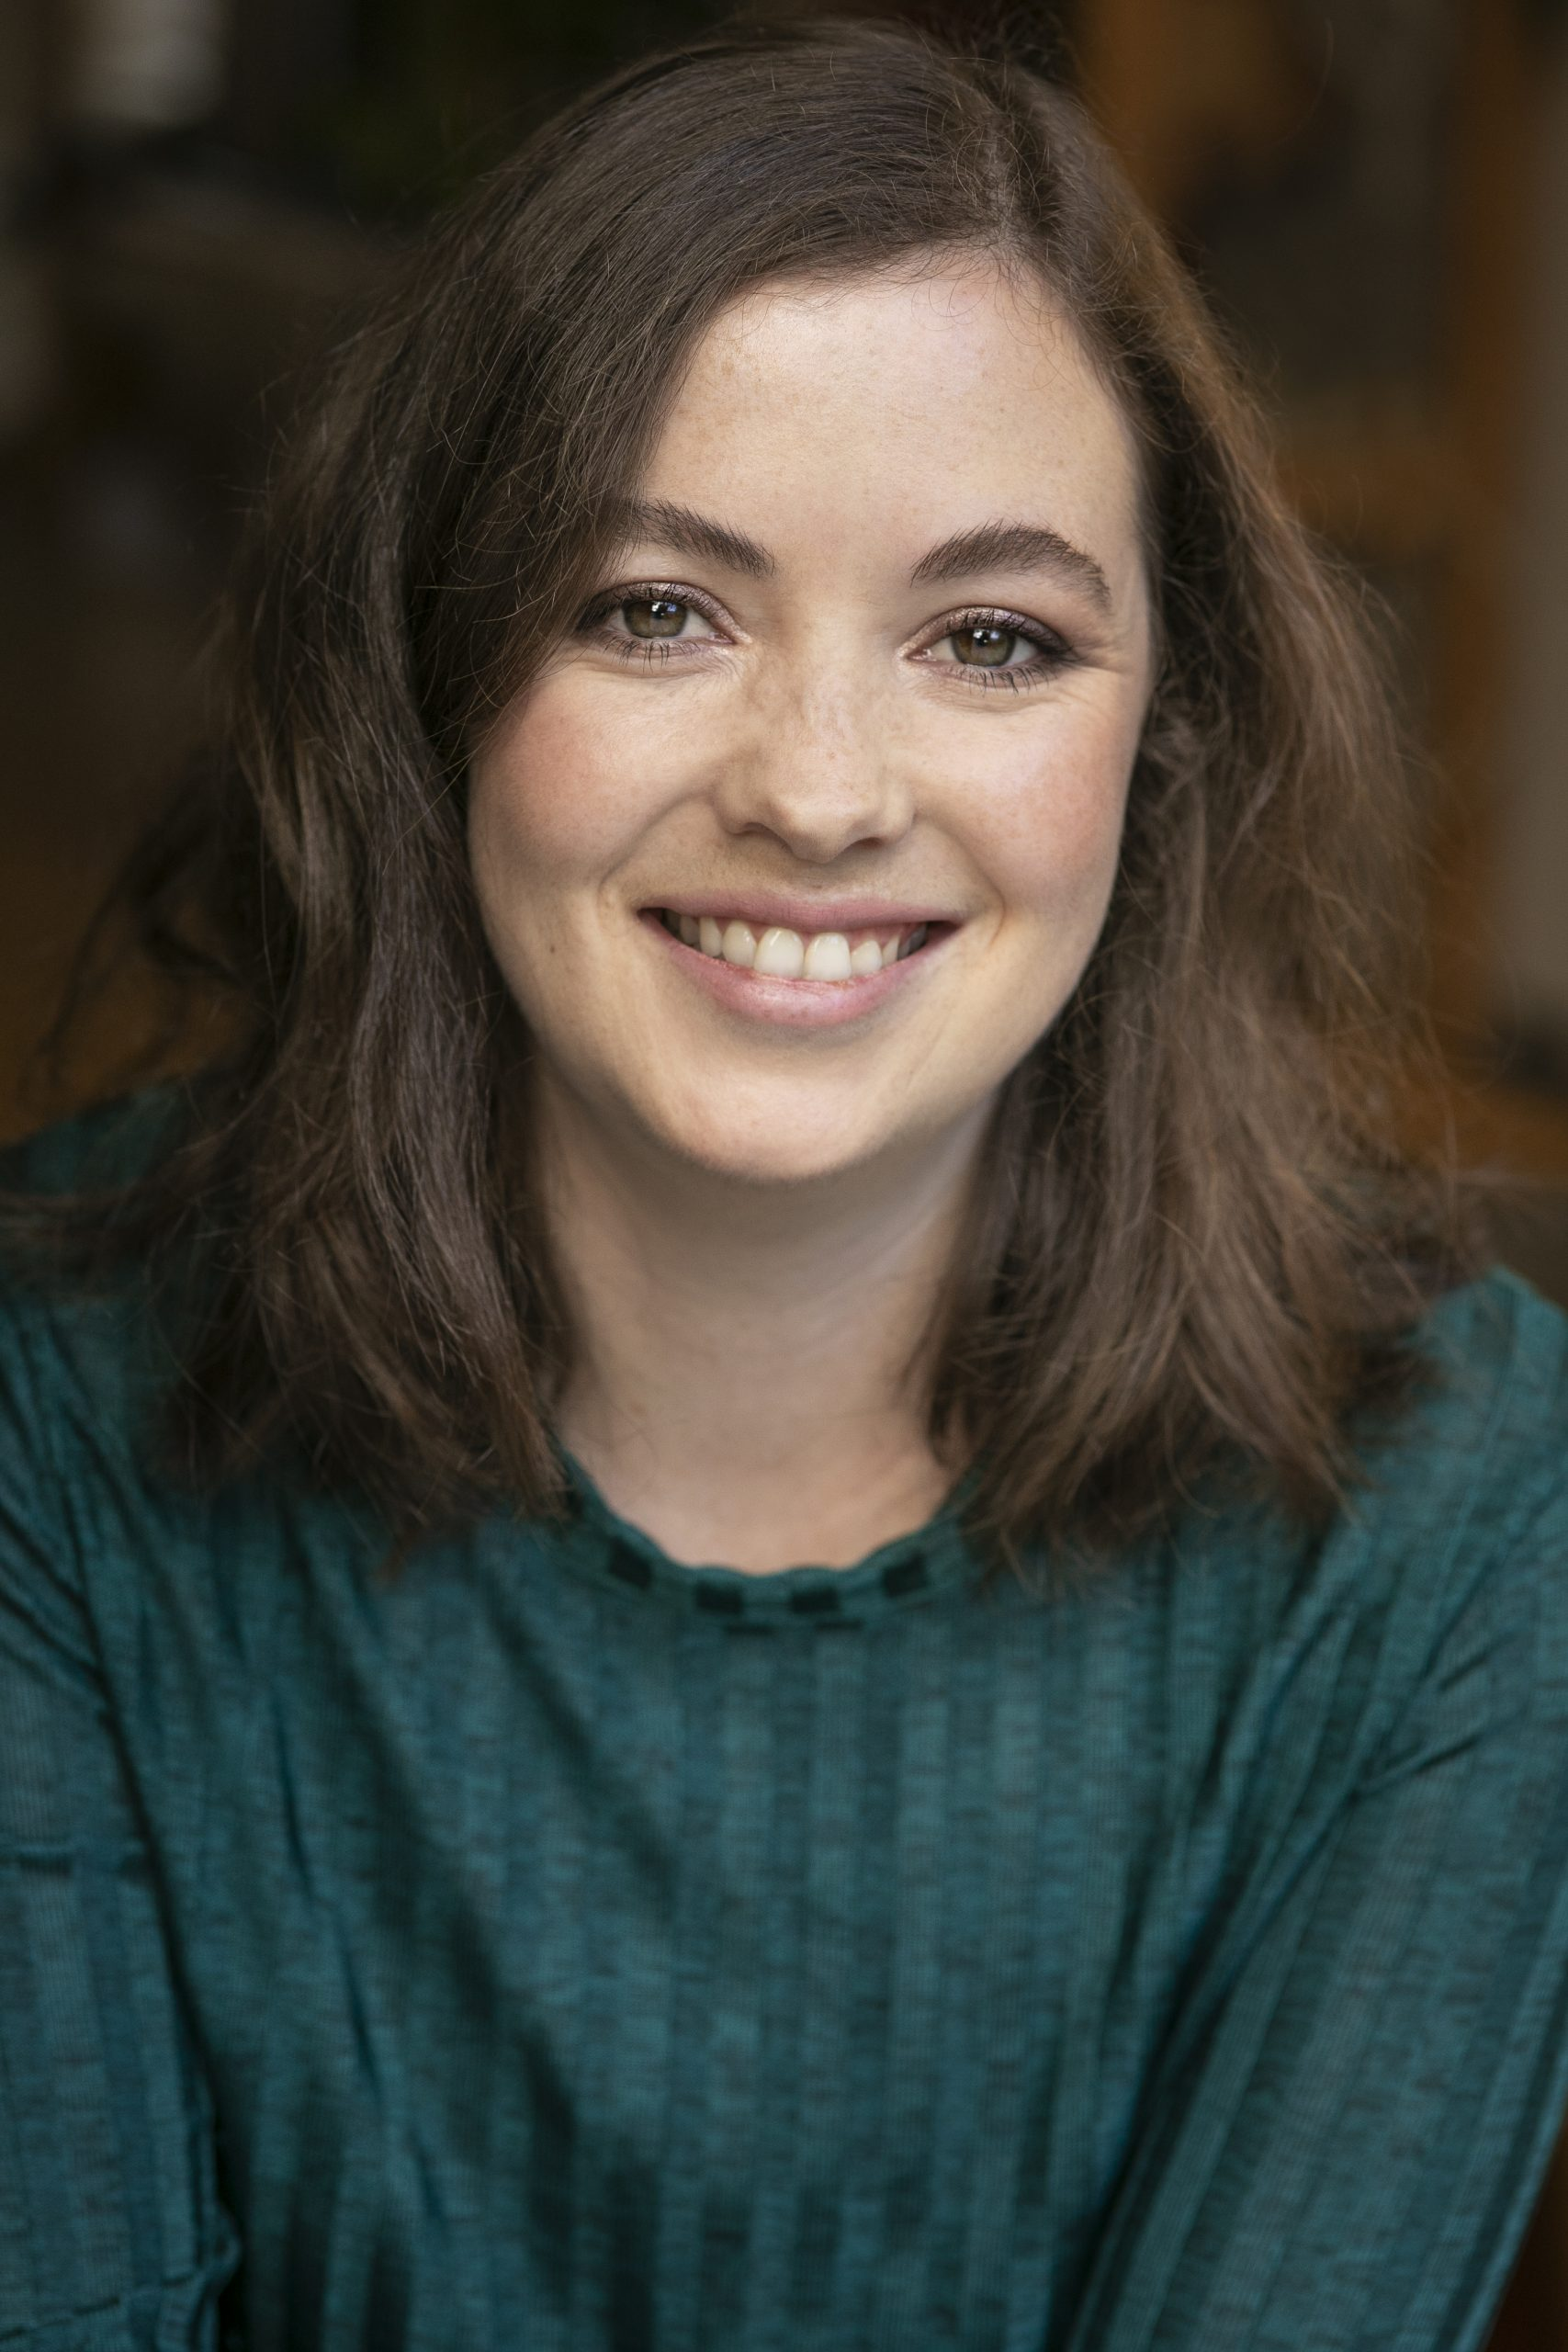 Photo of brunette Clare Marcie in a teal long sleeved top smiling warmly